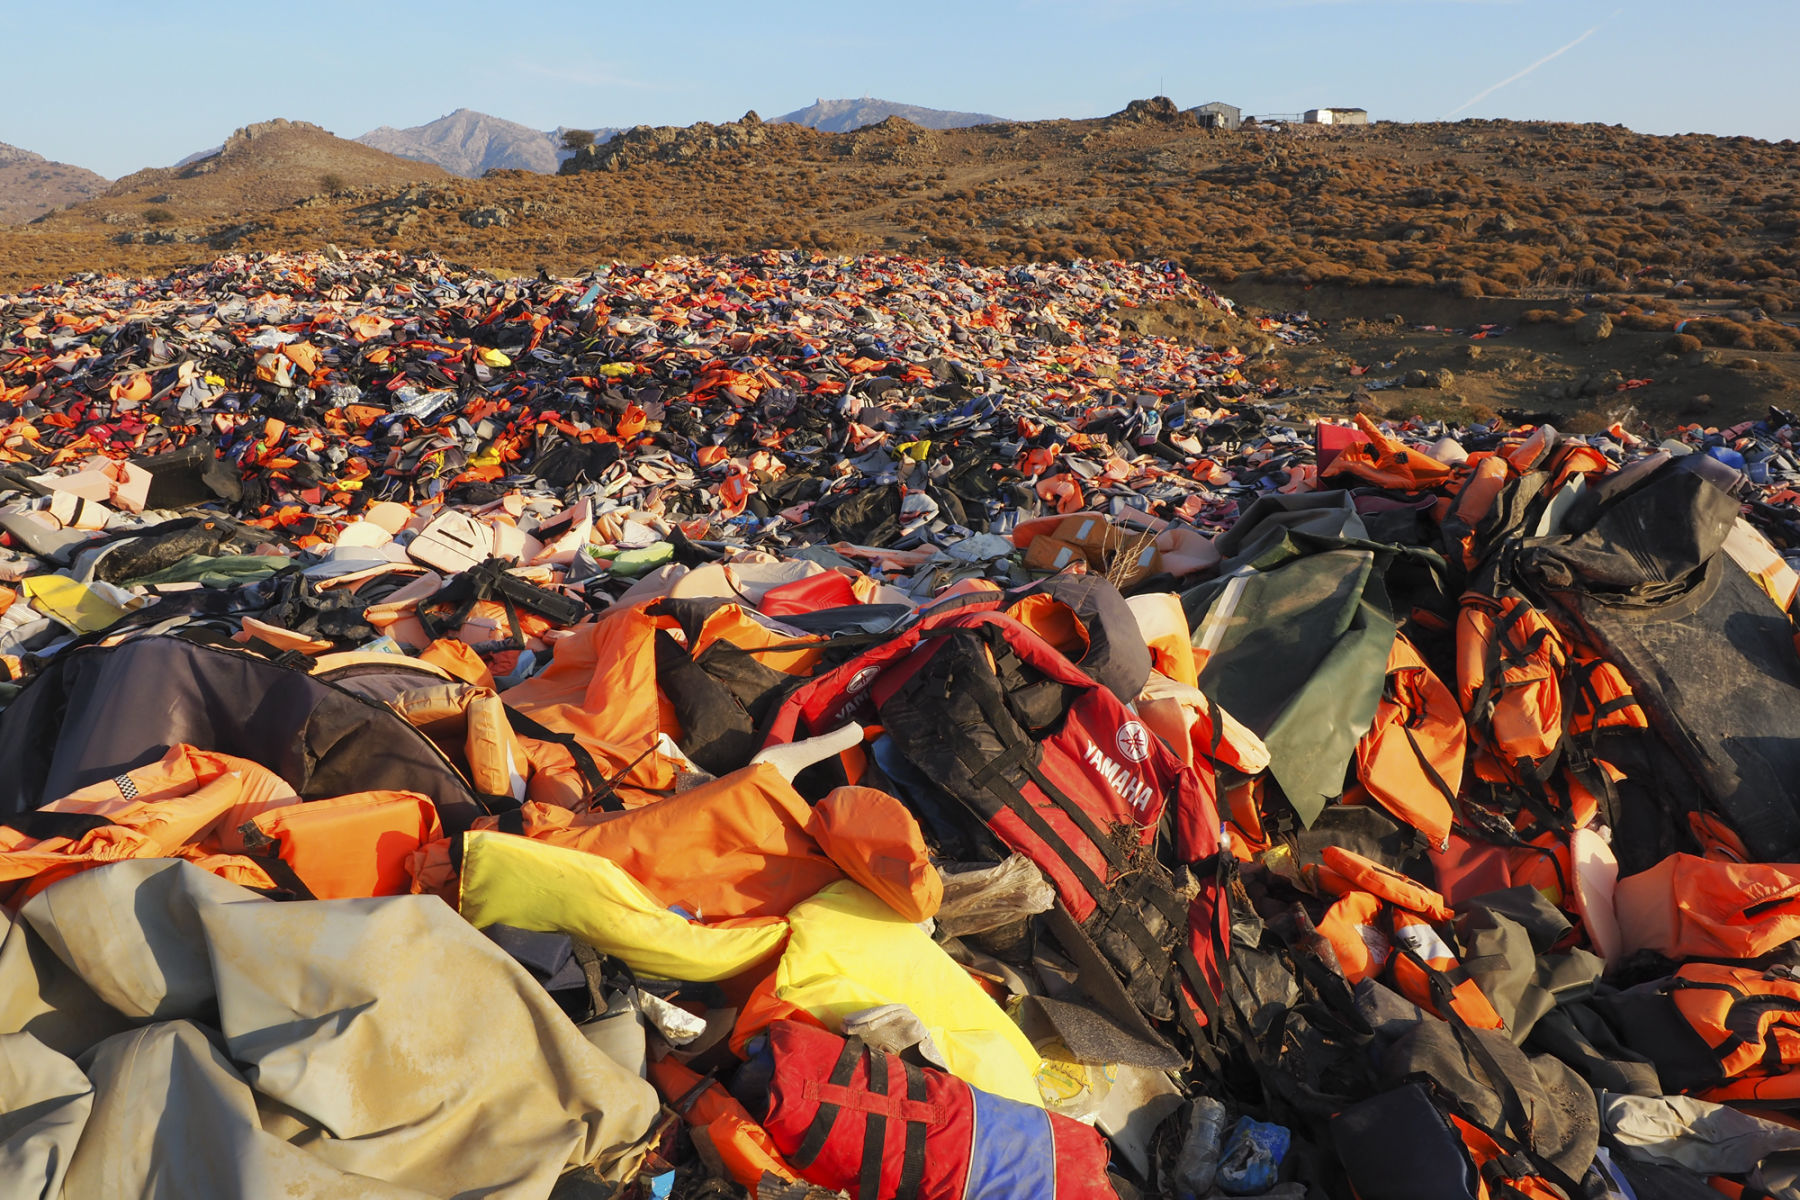 Near one million lifejackets  - www.lesvosolidarity.org - 2016